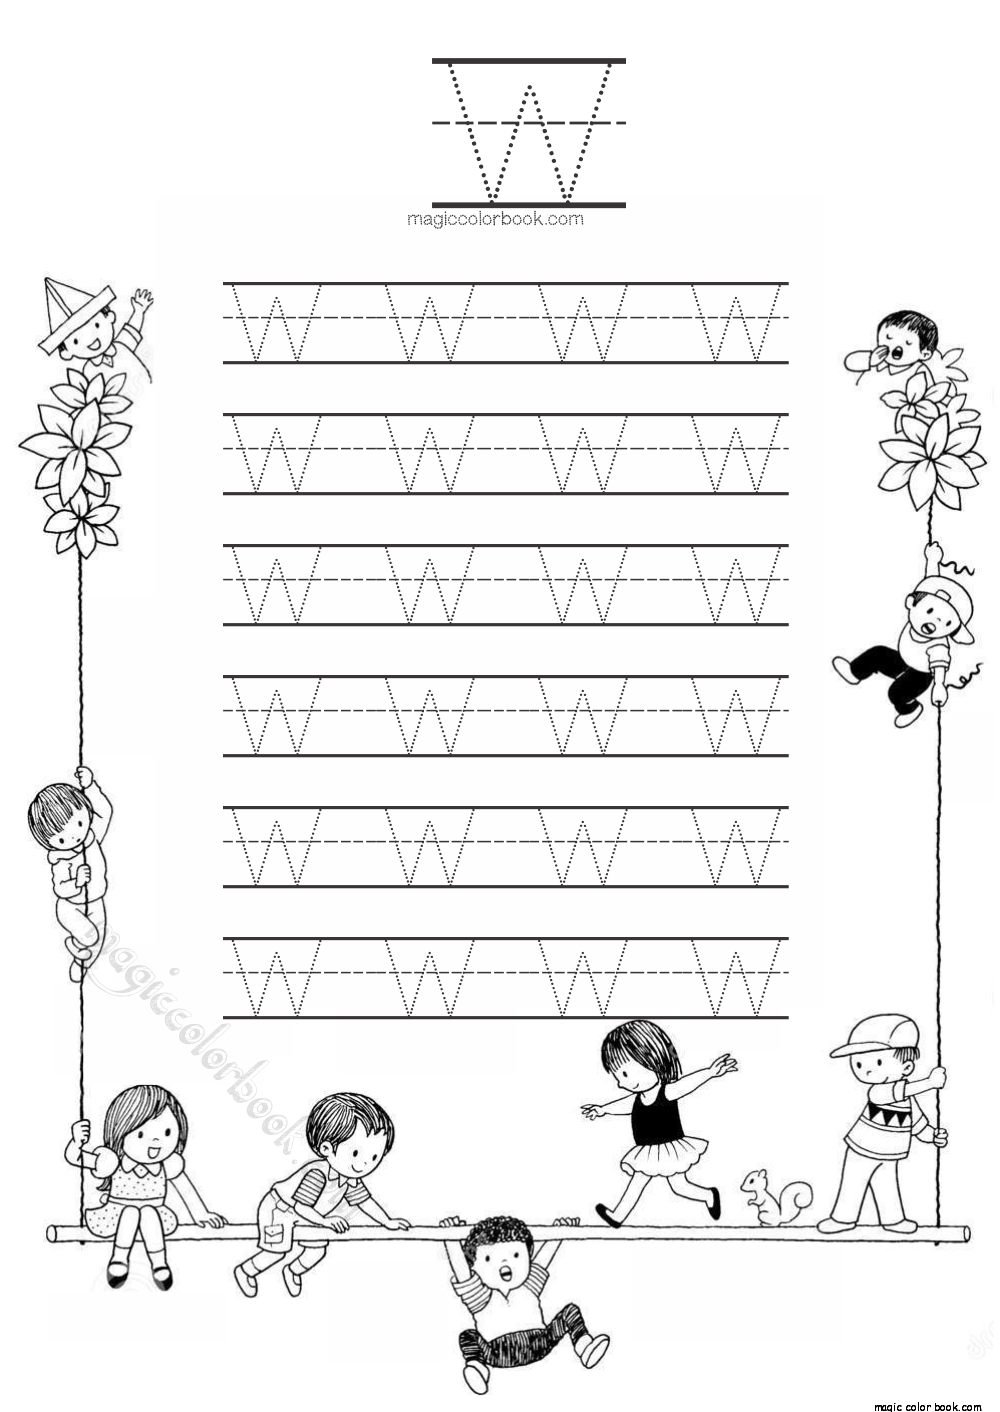 Pin by Magic Color Book on Motorcycle Coloring pages free  grade worksheets, math worksheets, education, multiplication, alphabet worksheets, and learning Phonetic Alphabet Worksheet 1412 x 1000